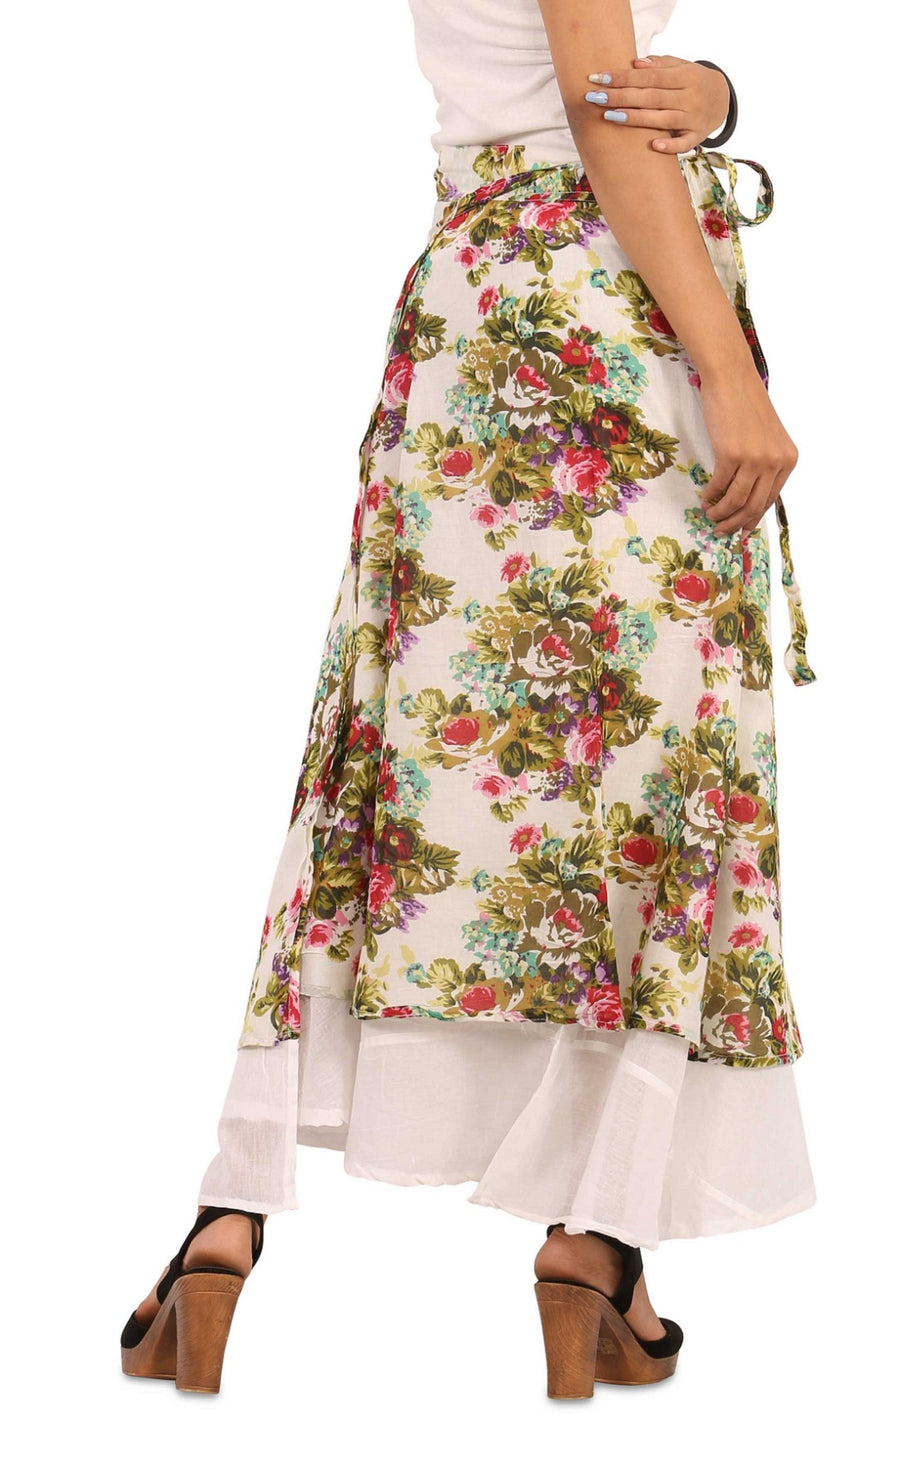 White Skirt, Floral Skirt, Skirts For Women, Wrap Around Skirt, High Waisted Skirt, Long Maxi Skirt, Skirts Online, Summer Skirts, Long Skirt, Cute Skirts, Cotton Skirts,Full Skirt, Long Summer Skirts,  Buy Skirts Online